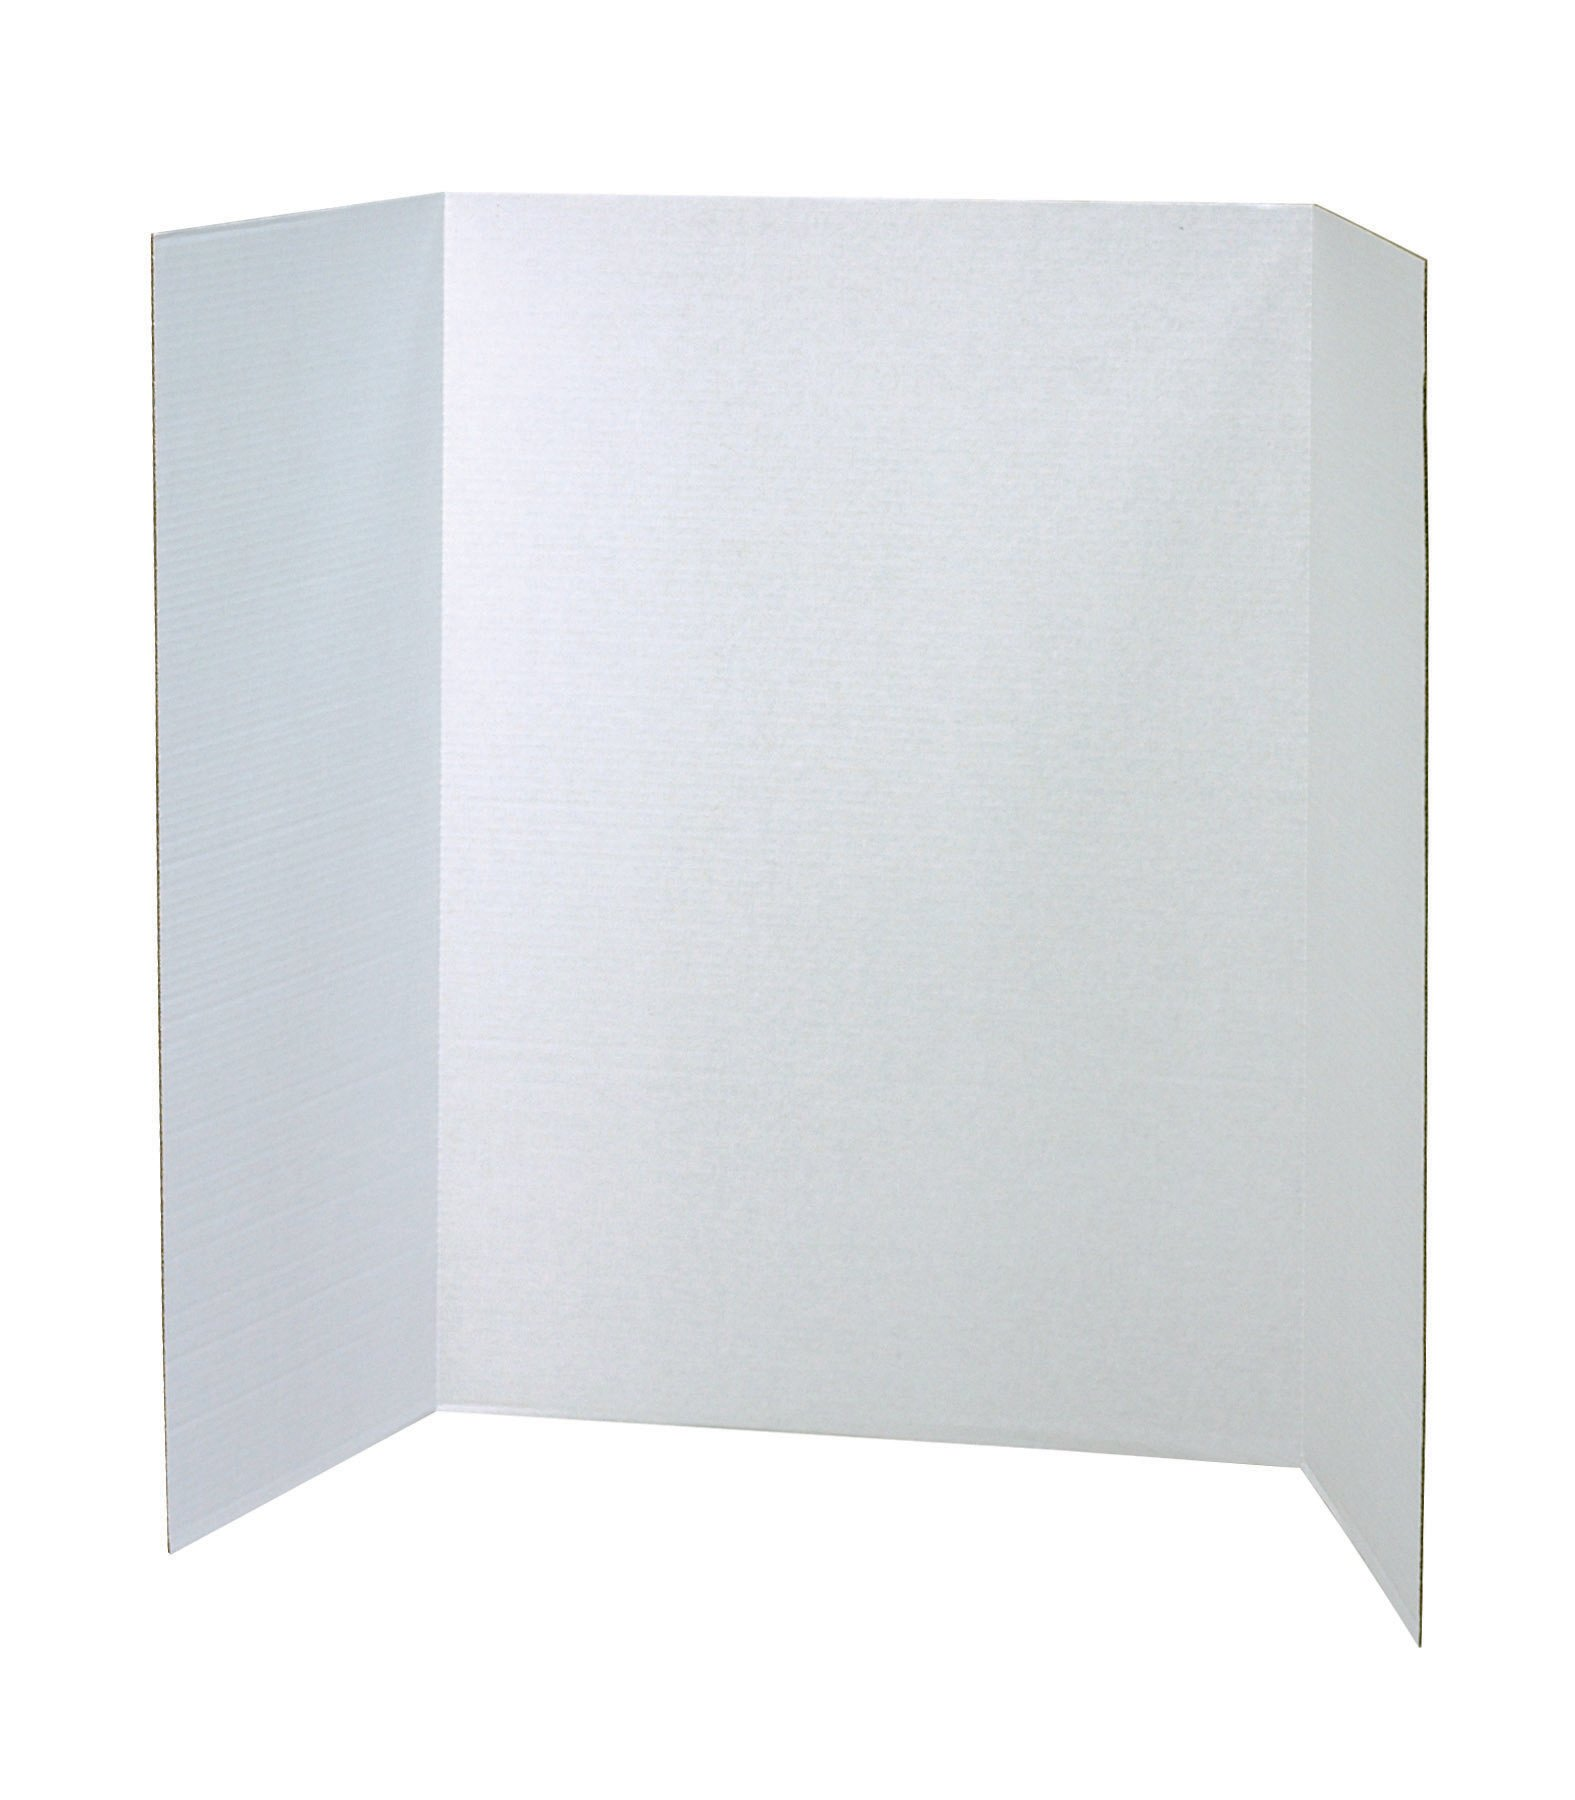 Pacon Presentation Board Presentation Display Booth, White, 40x28-Inches (37744)